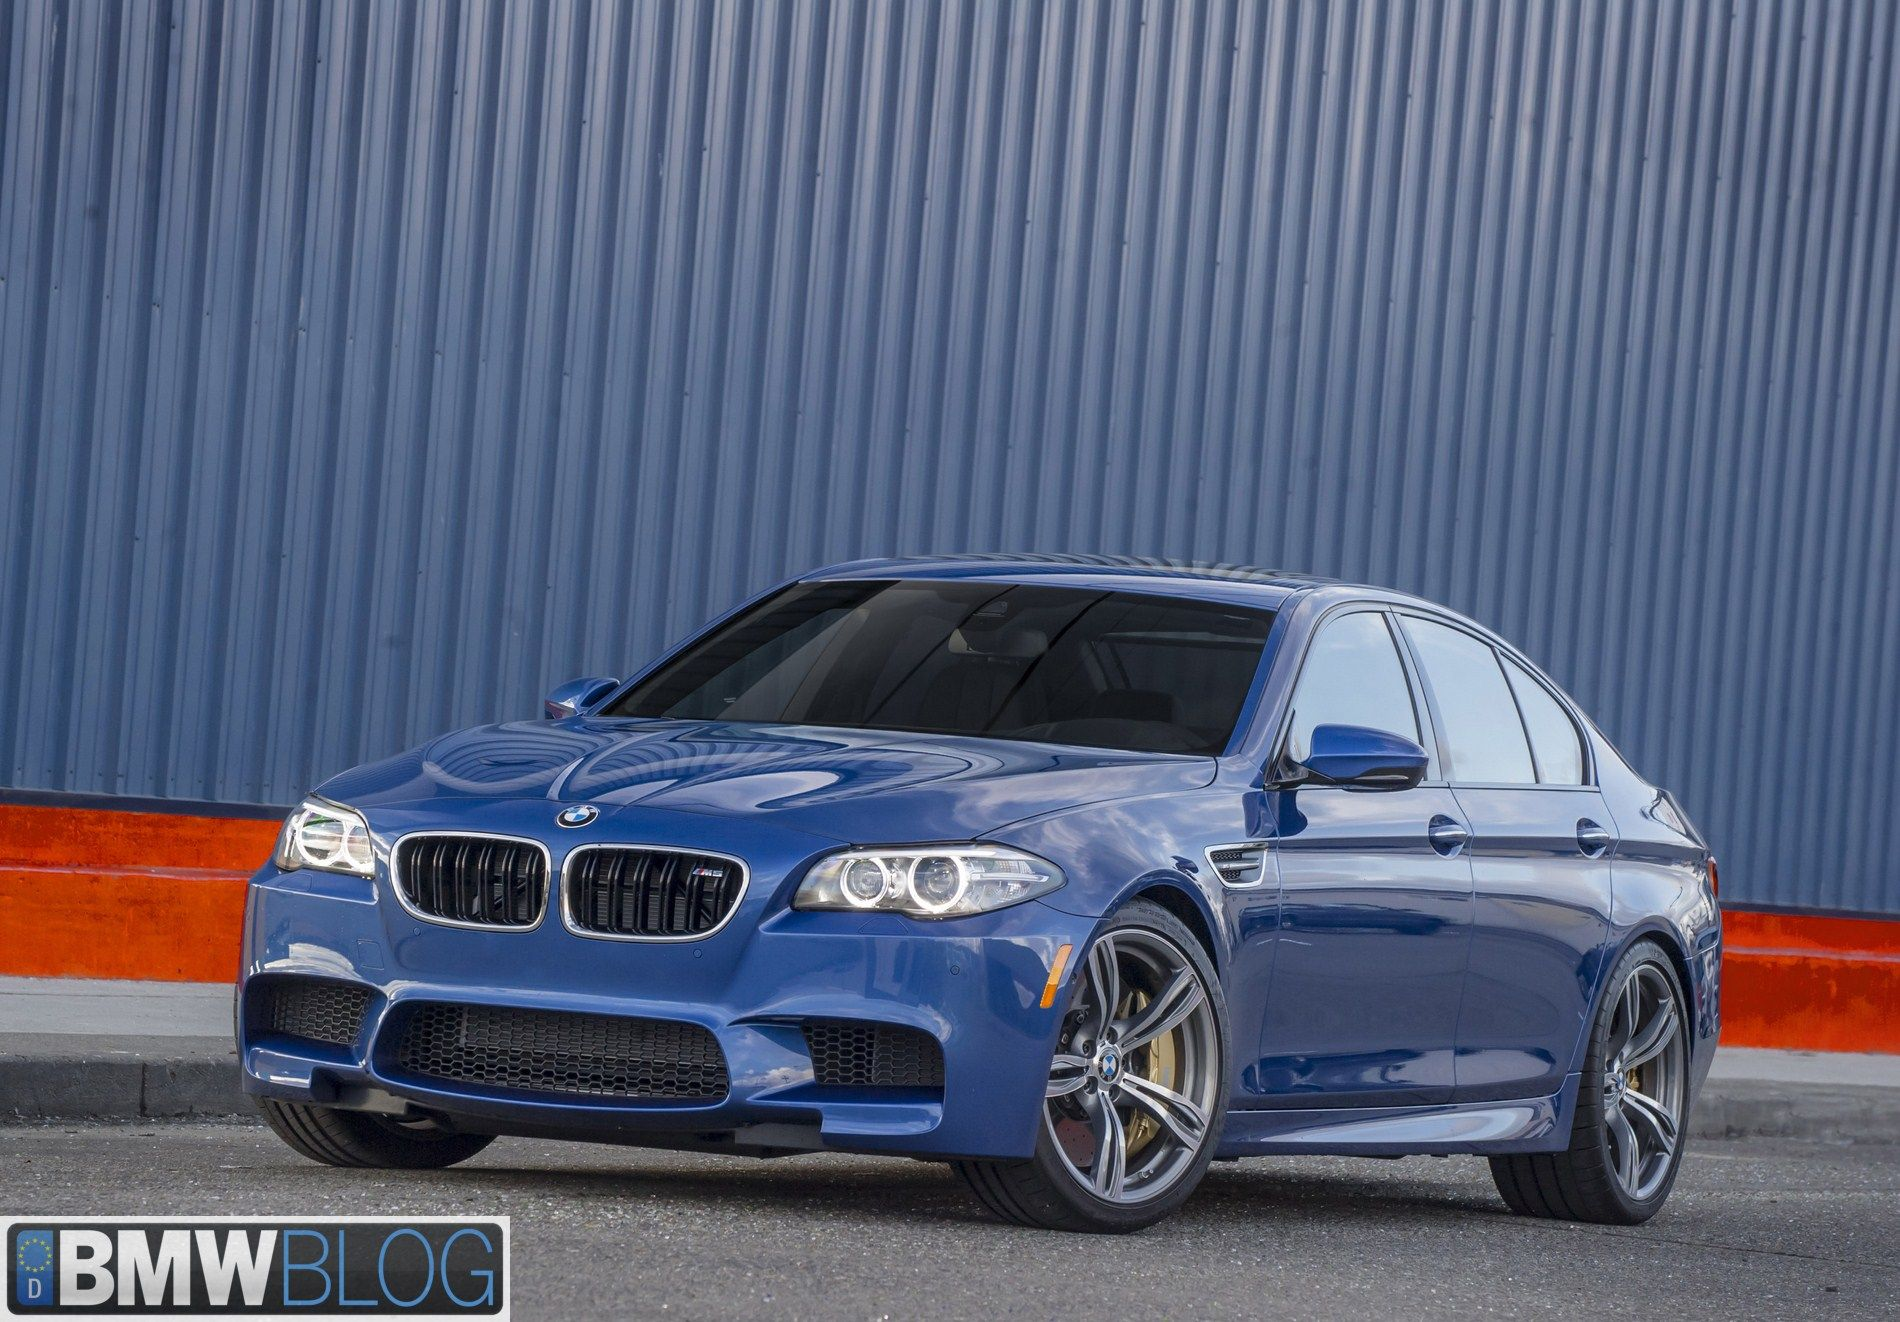 F10 Bmw M5 F12 Bmw M6 Competition Package Make Over 600 Hp To